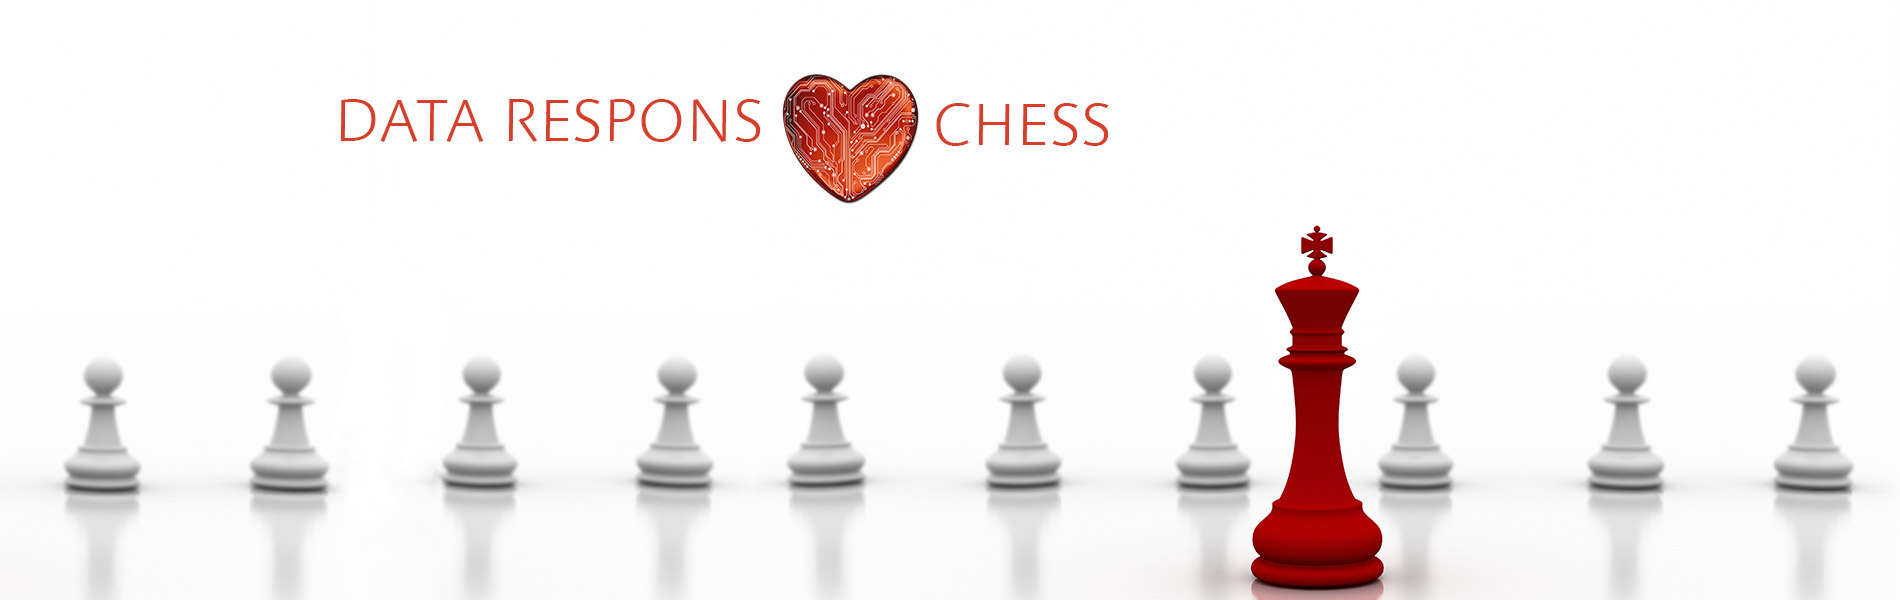 Data Respons loves chess